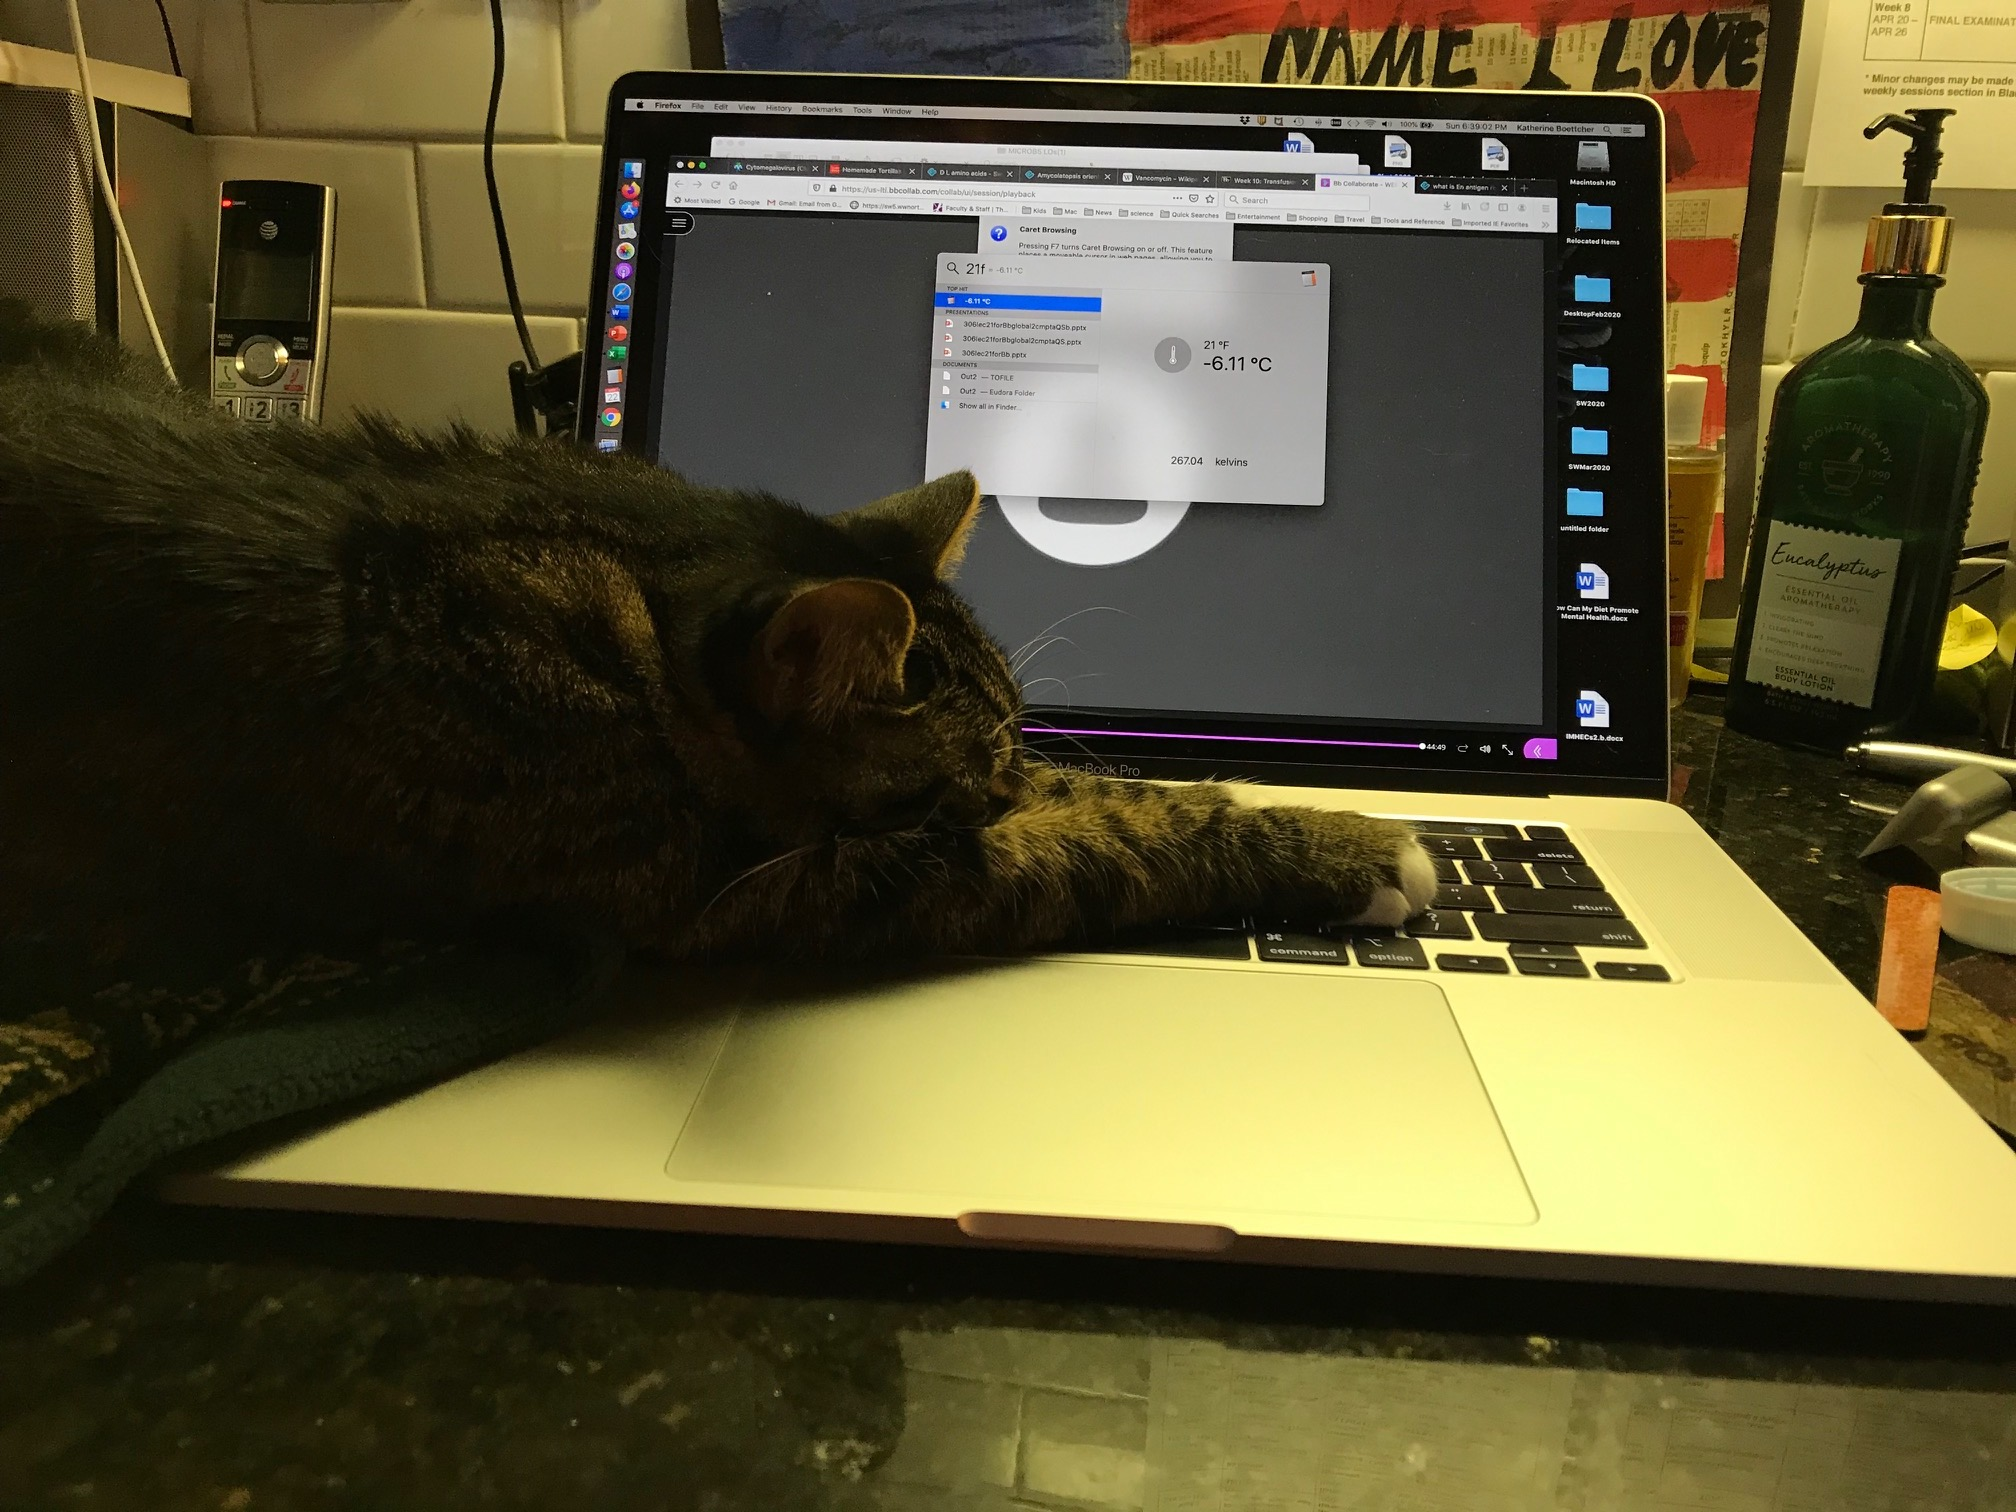 cat lounging on computer keyboard